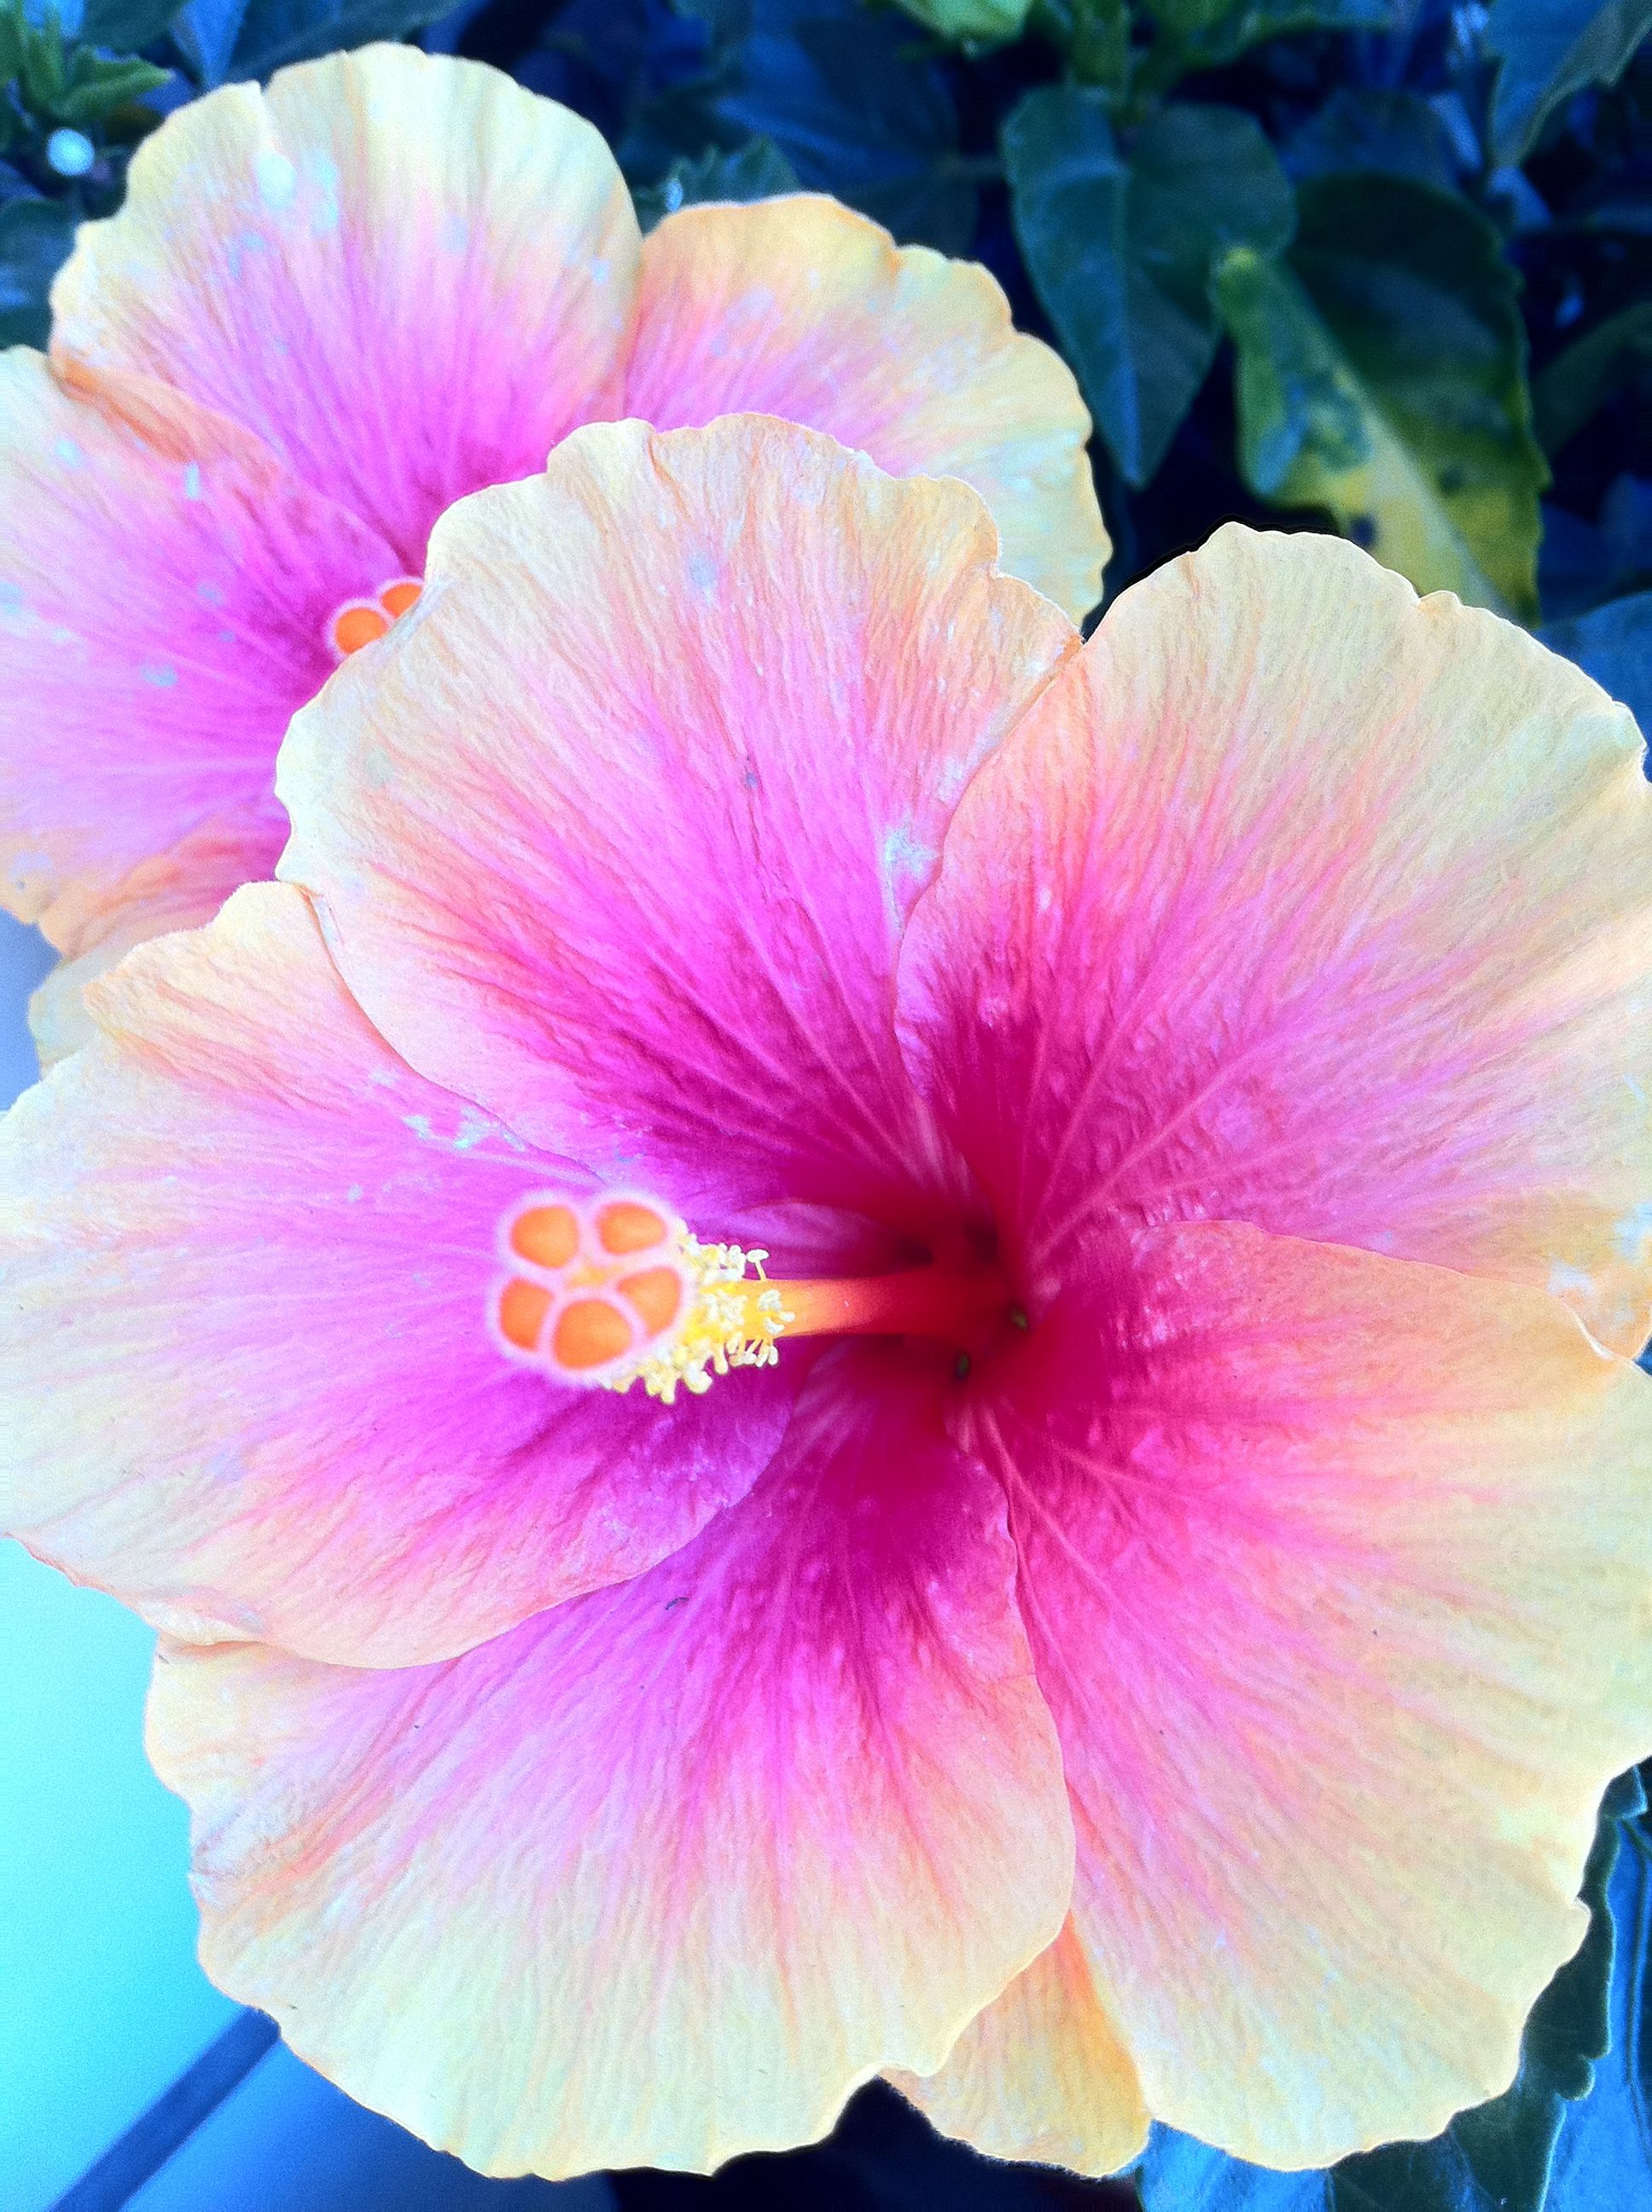 This hibiscus is one of the many beautys in nature flora pinte this hibiscus is one of the many beautys in nature more izmirmasajfo